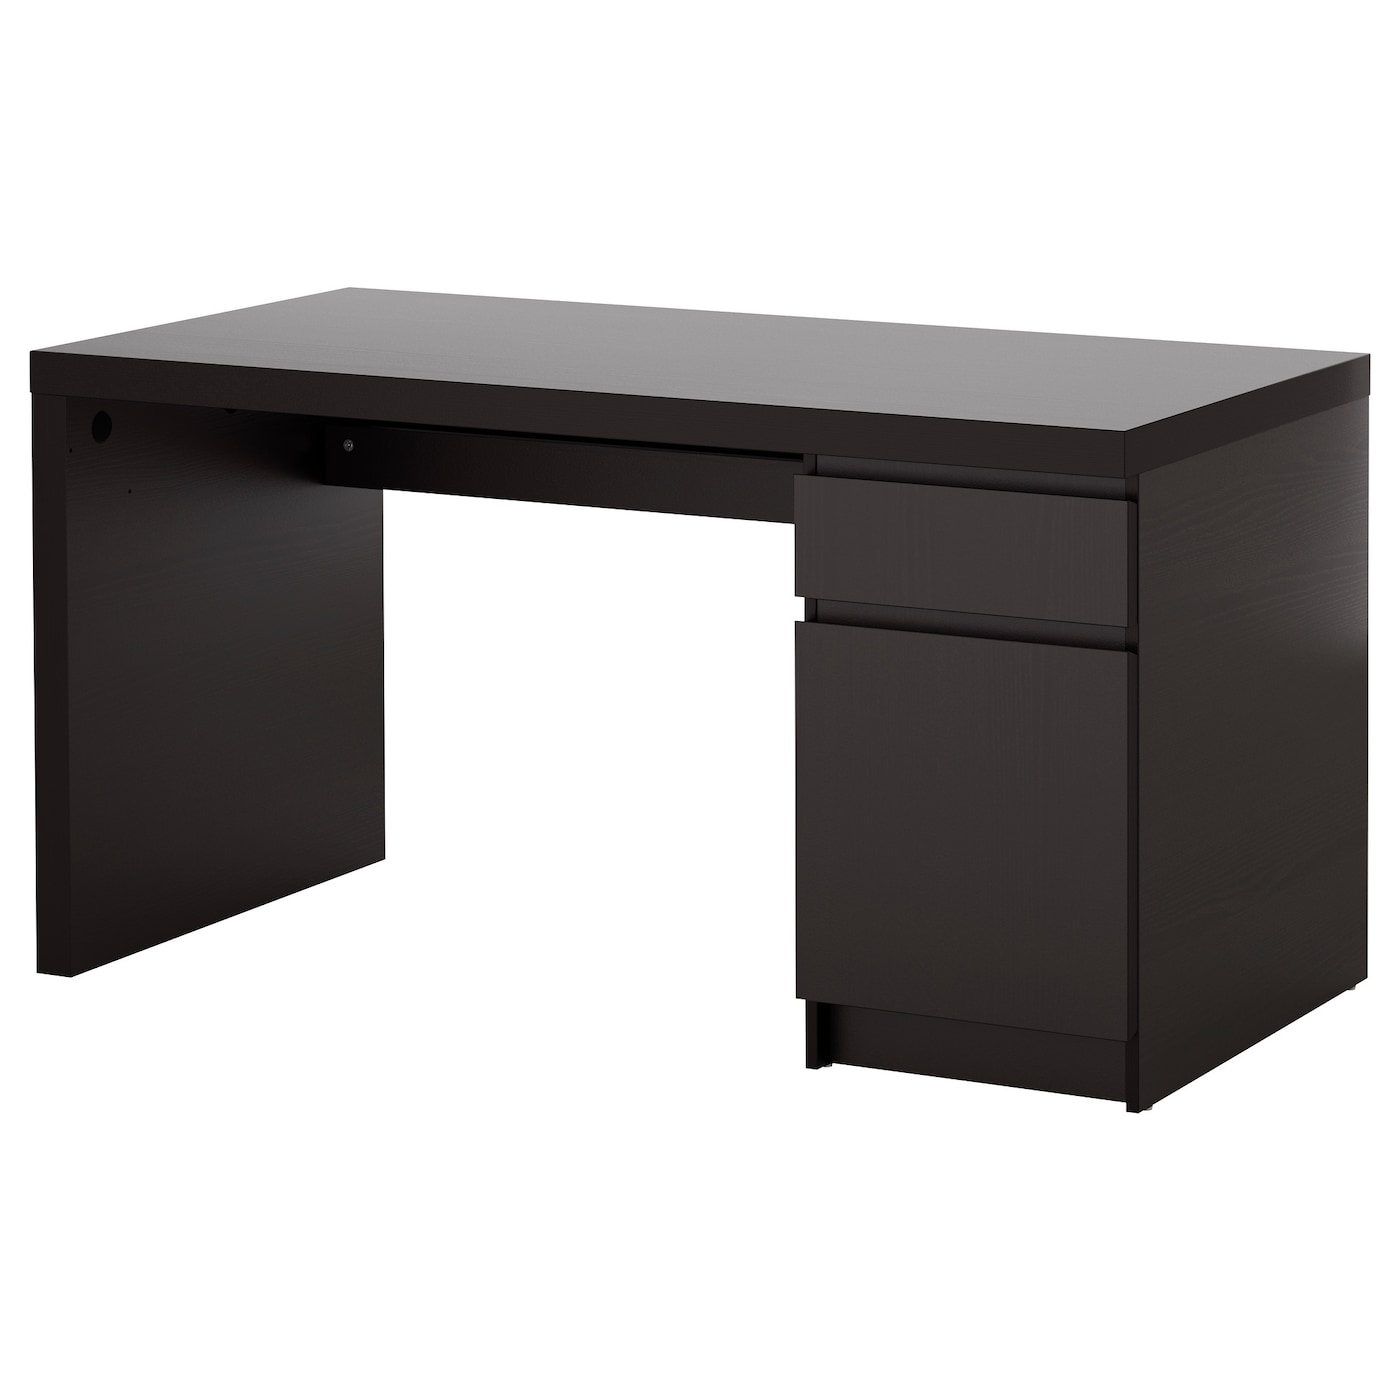 malm desk black brown 140x65 cm ikea